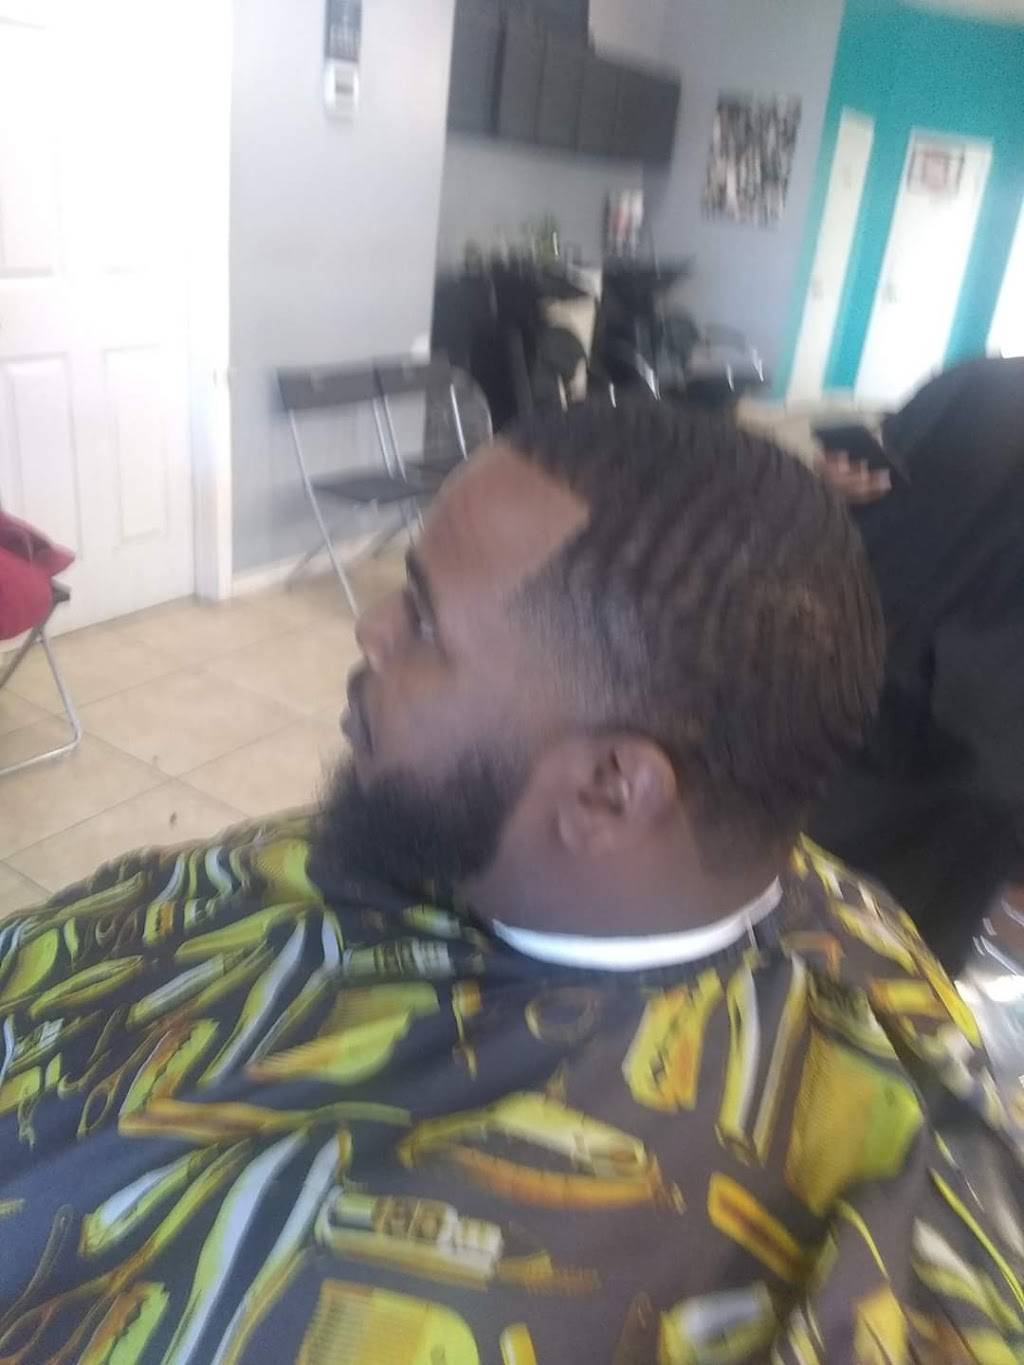 Tims Barber Shop - hair care  | Photo 7 of 7 | Address: 1250 Texas Pkwy, Stafford, TX 77477, USA | Phone: (832) 455-7930